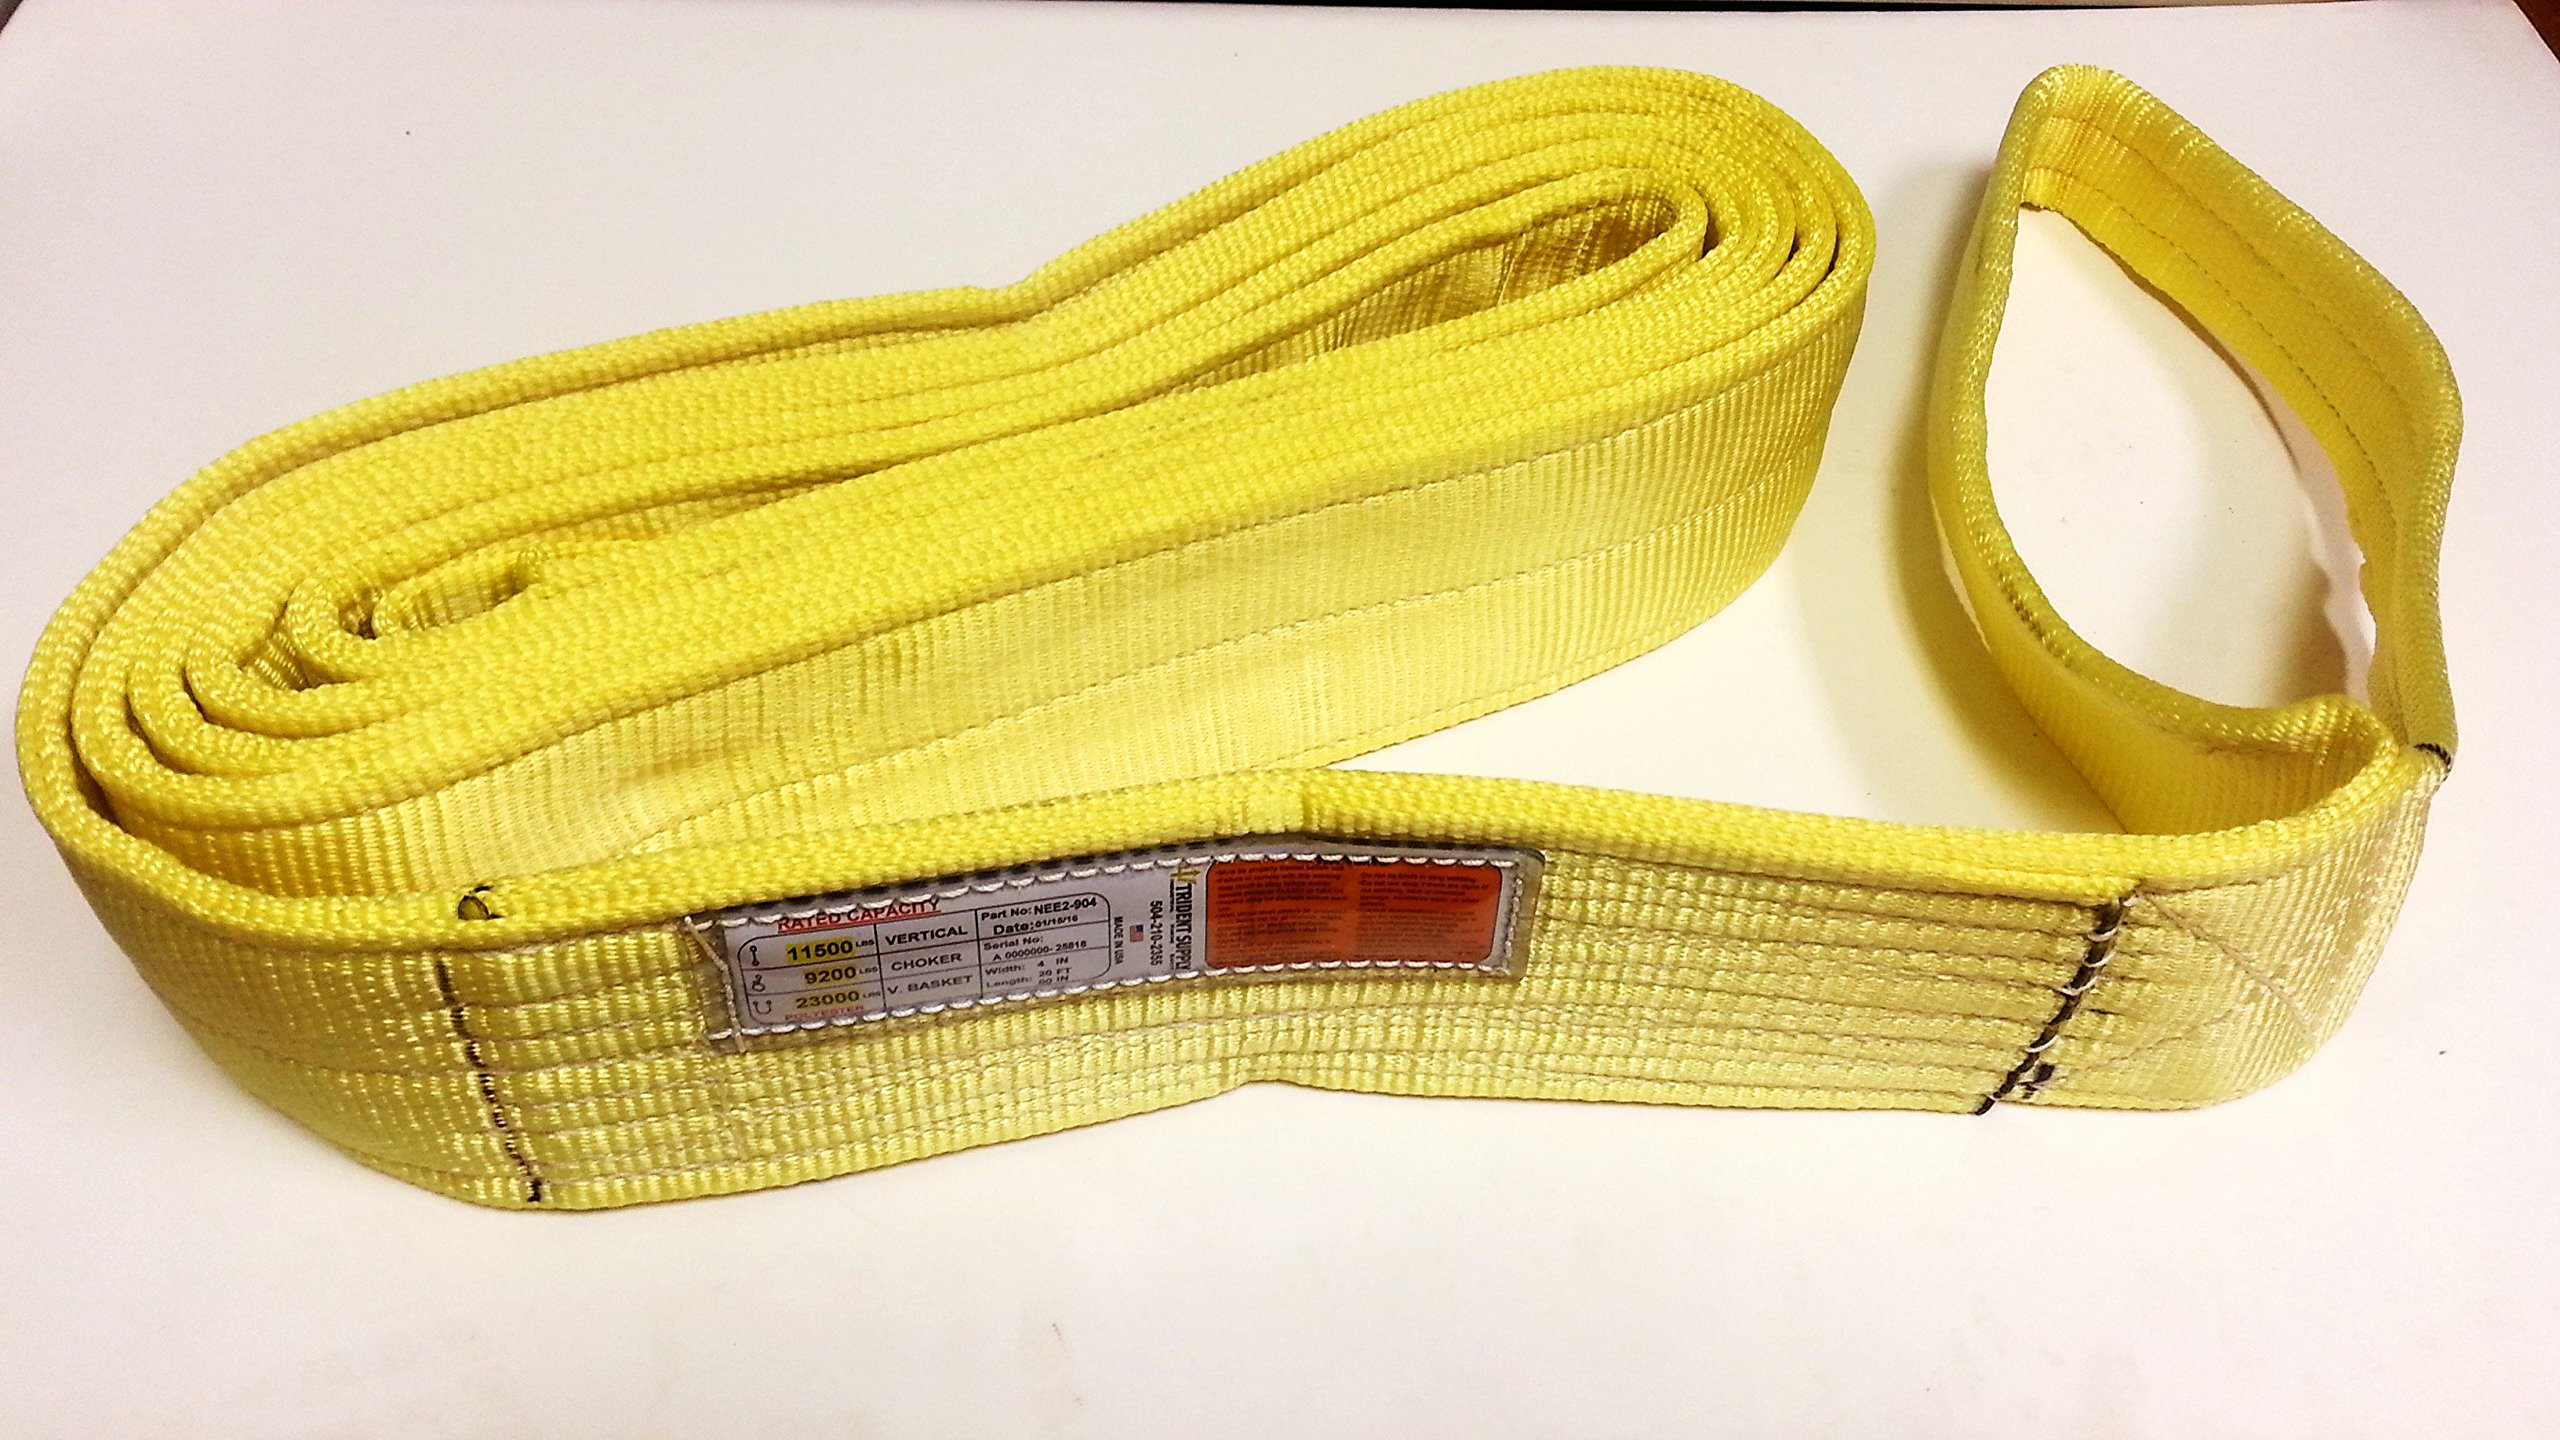 Trident Sling / Tow Strap. NEE2-904X20TS. This (2-PLY) Type3 Flat E/E Heavy Duty Nylon / Polyester Web Sling Is Ideal For All Lifting, Rigging, Towing, Recovery and Tie-Down Needs! (4'' X 20')